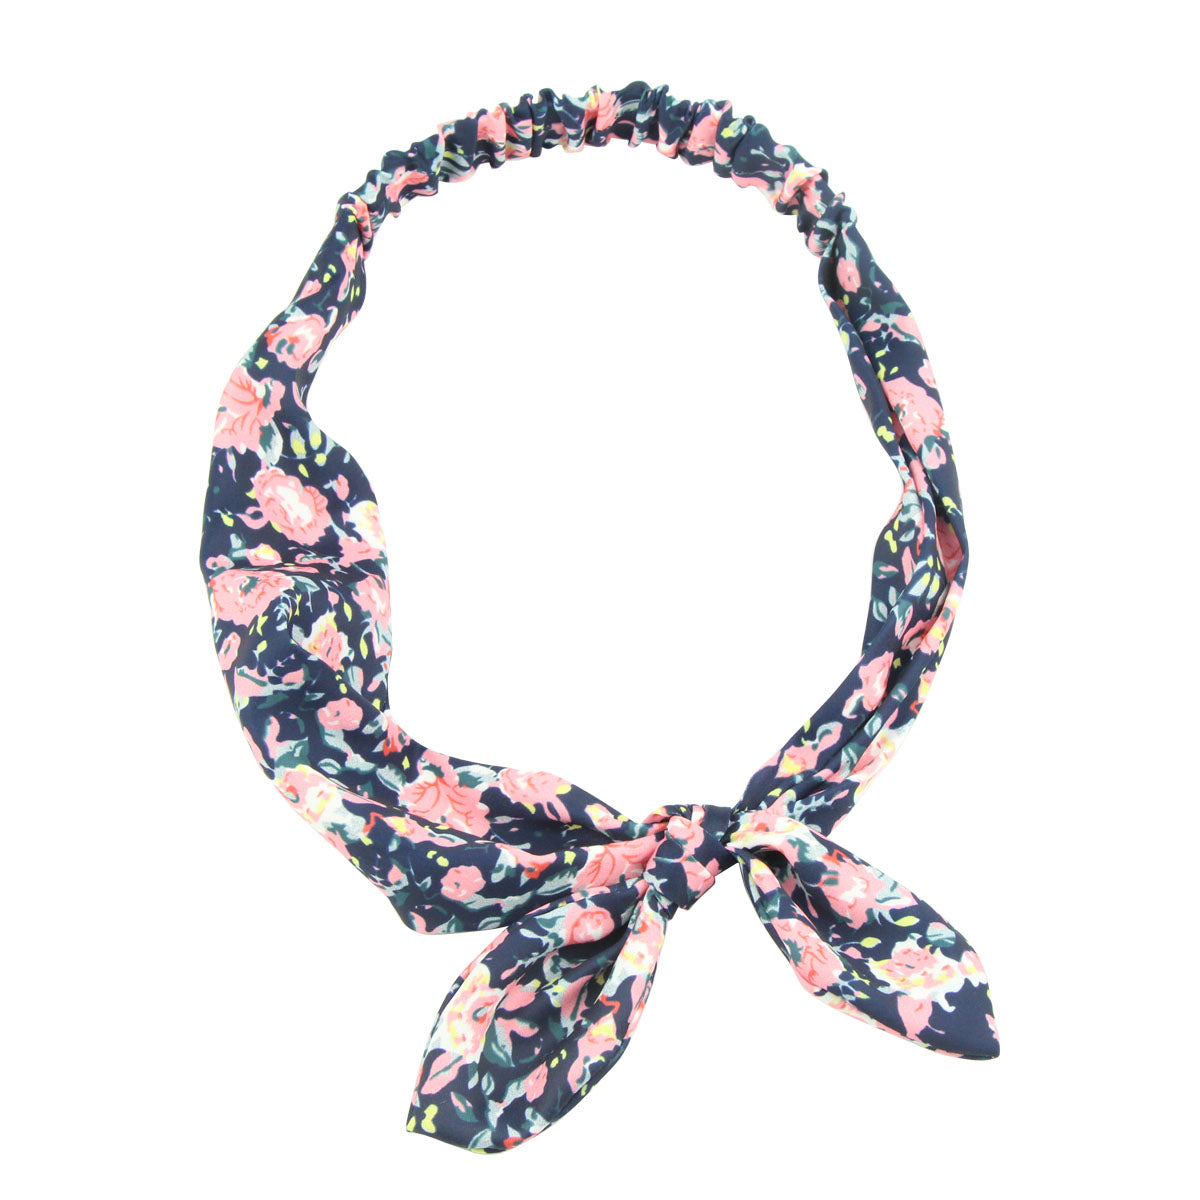 bandana polyester hair bands turban hair head wrap bunny ear women hair accessory 6730 - SOHOBUCKS CO.,LIMITED